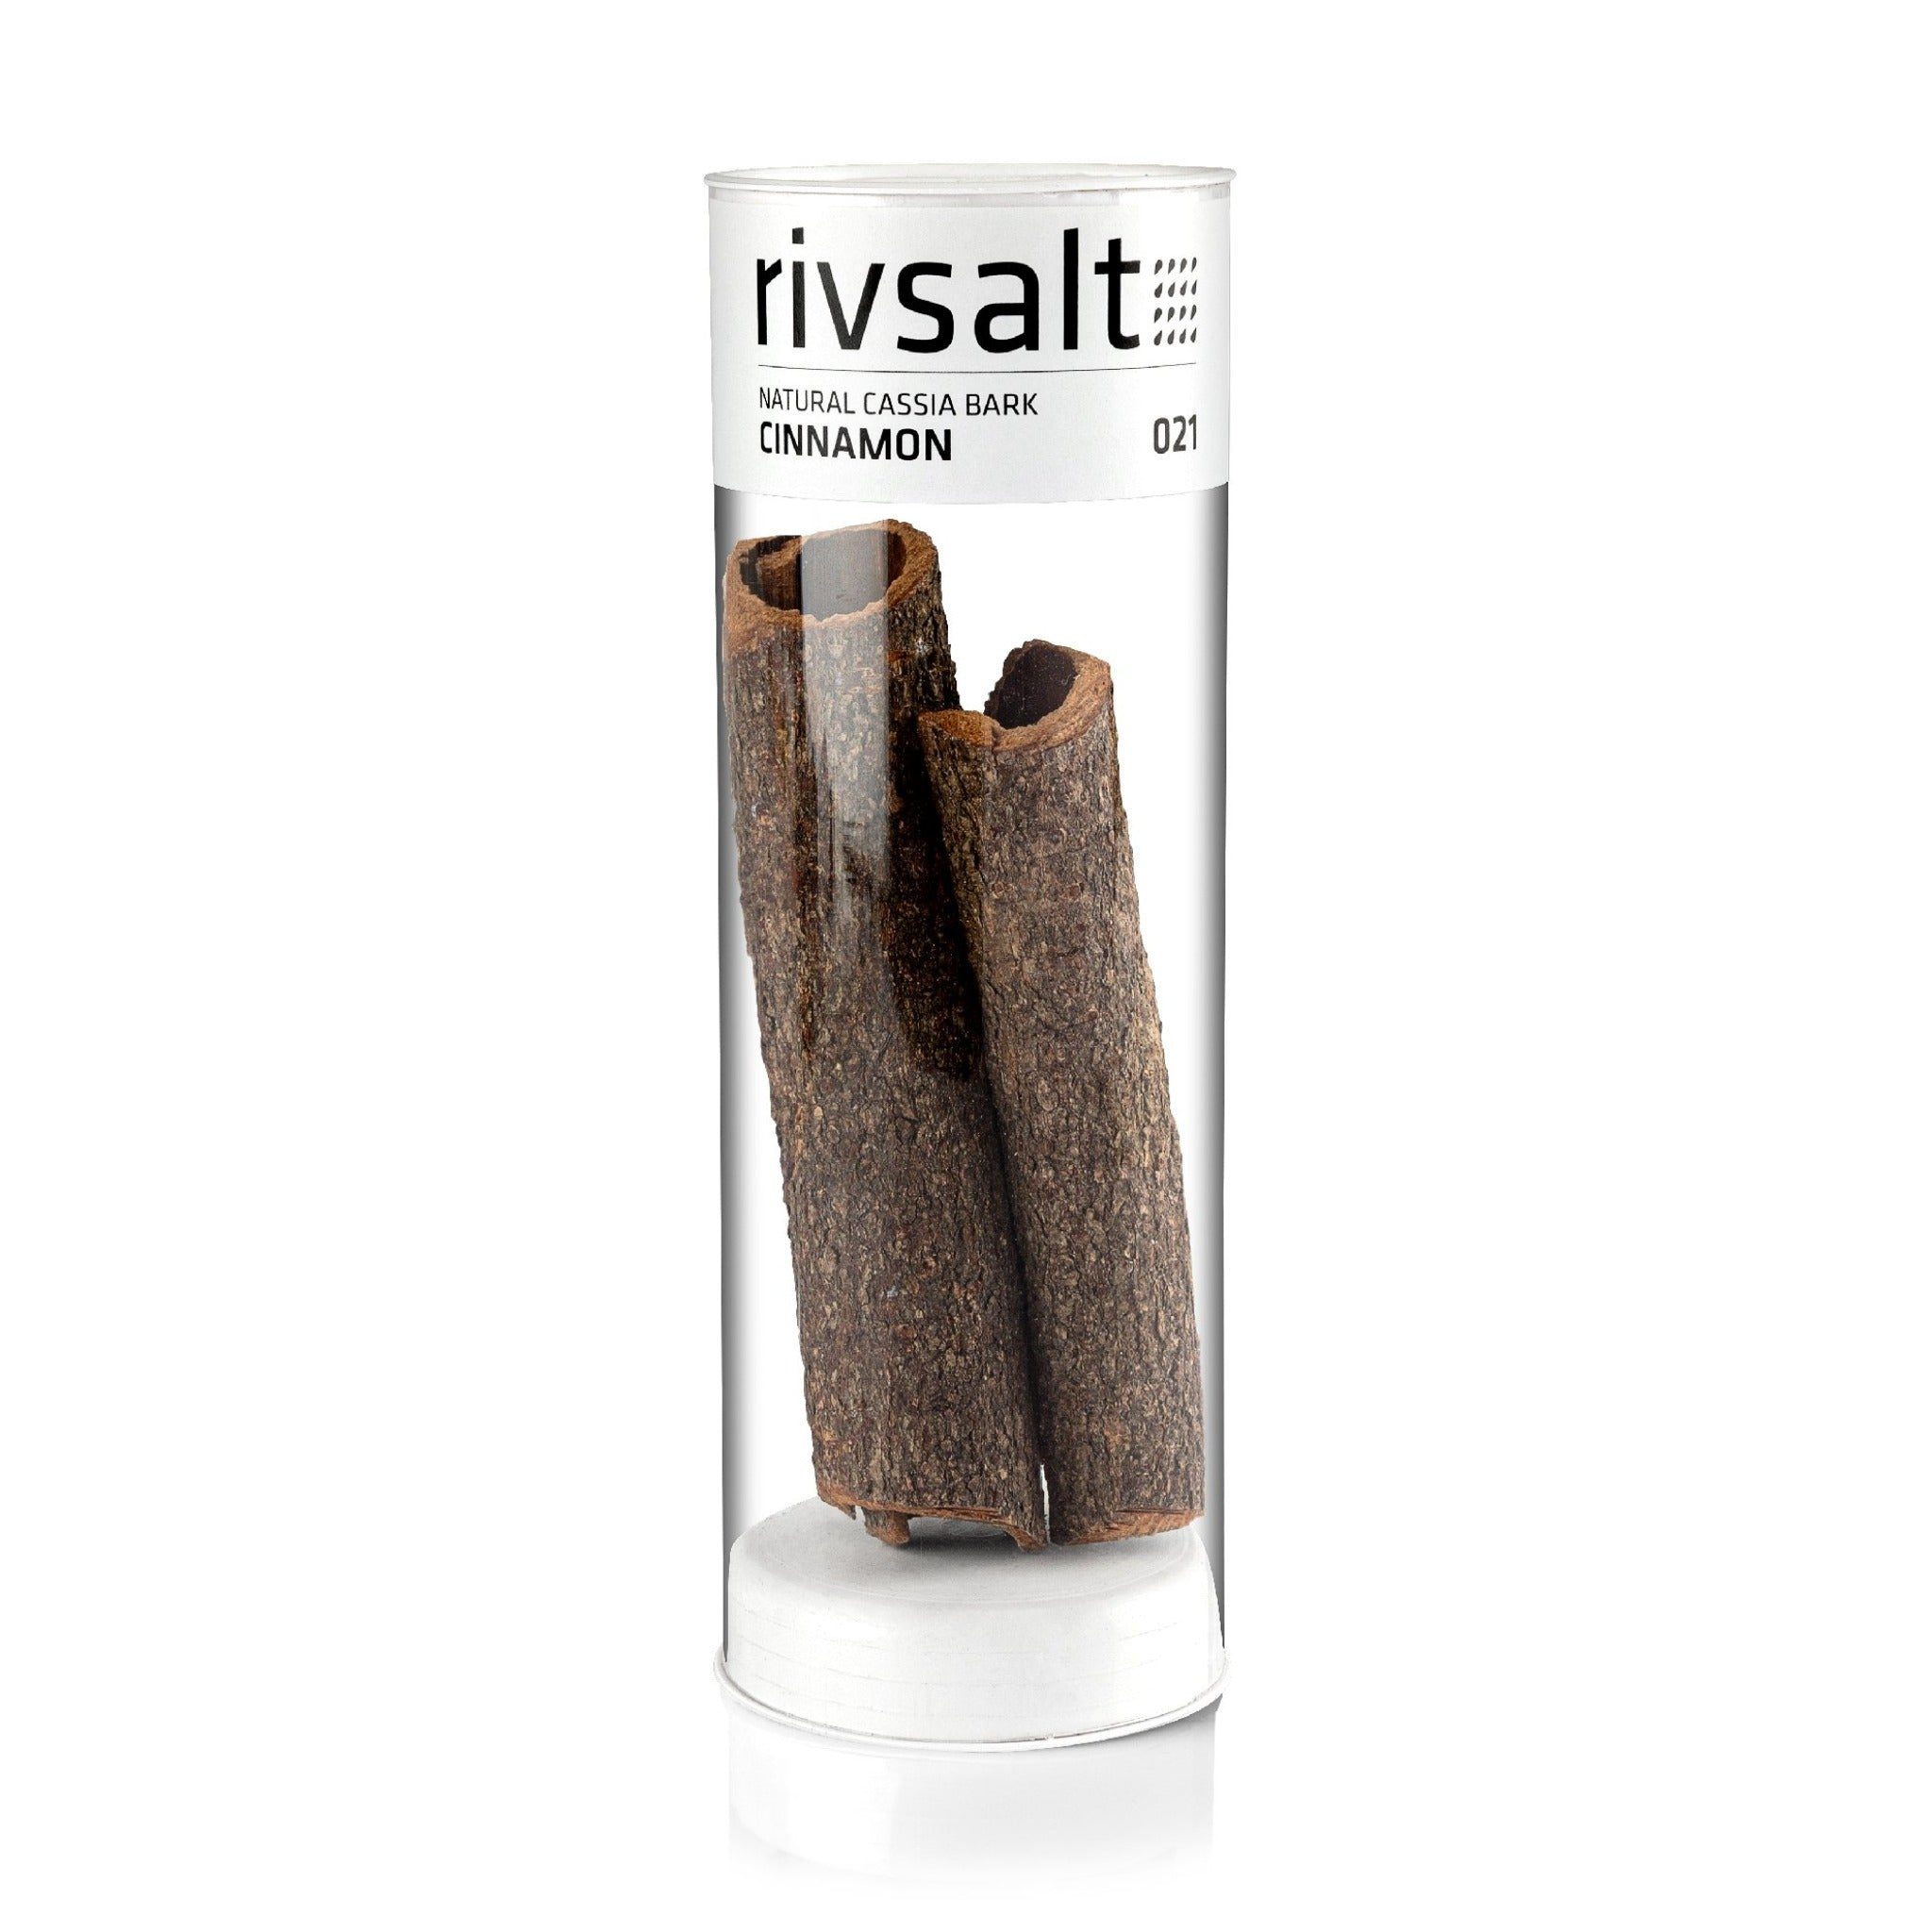 021 CINNAMON - NATURAL CASSIA BARK